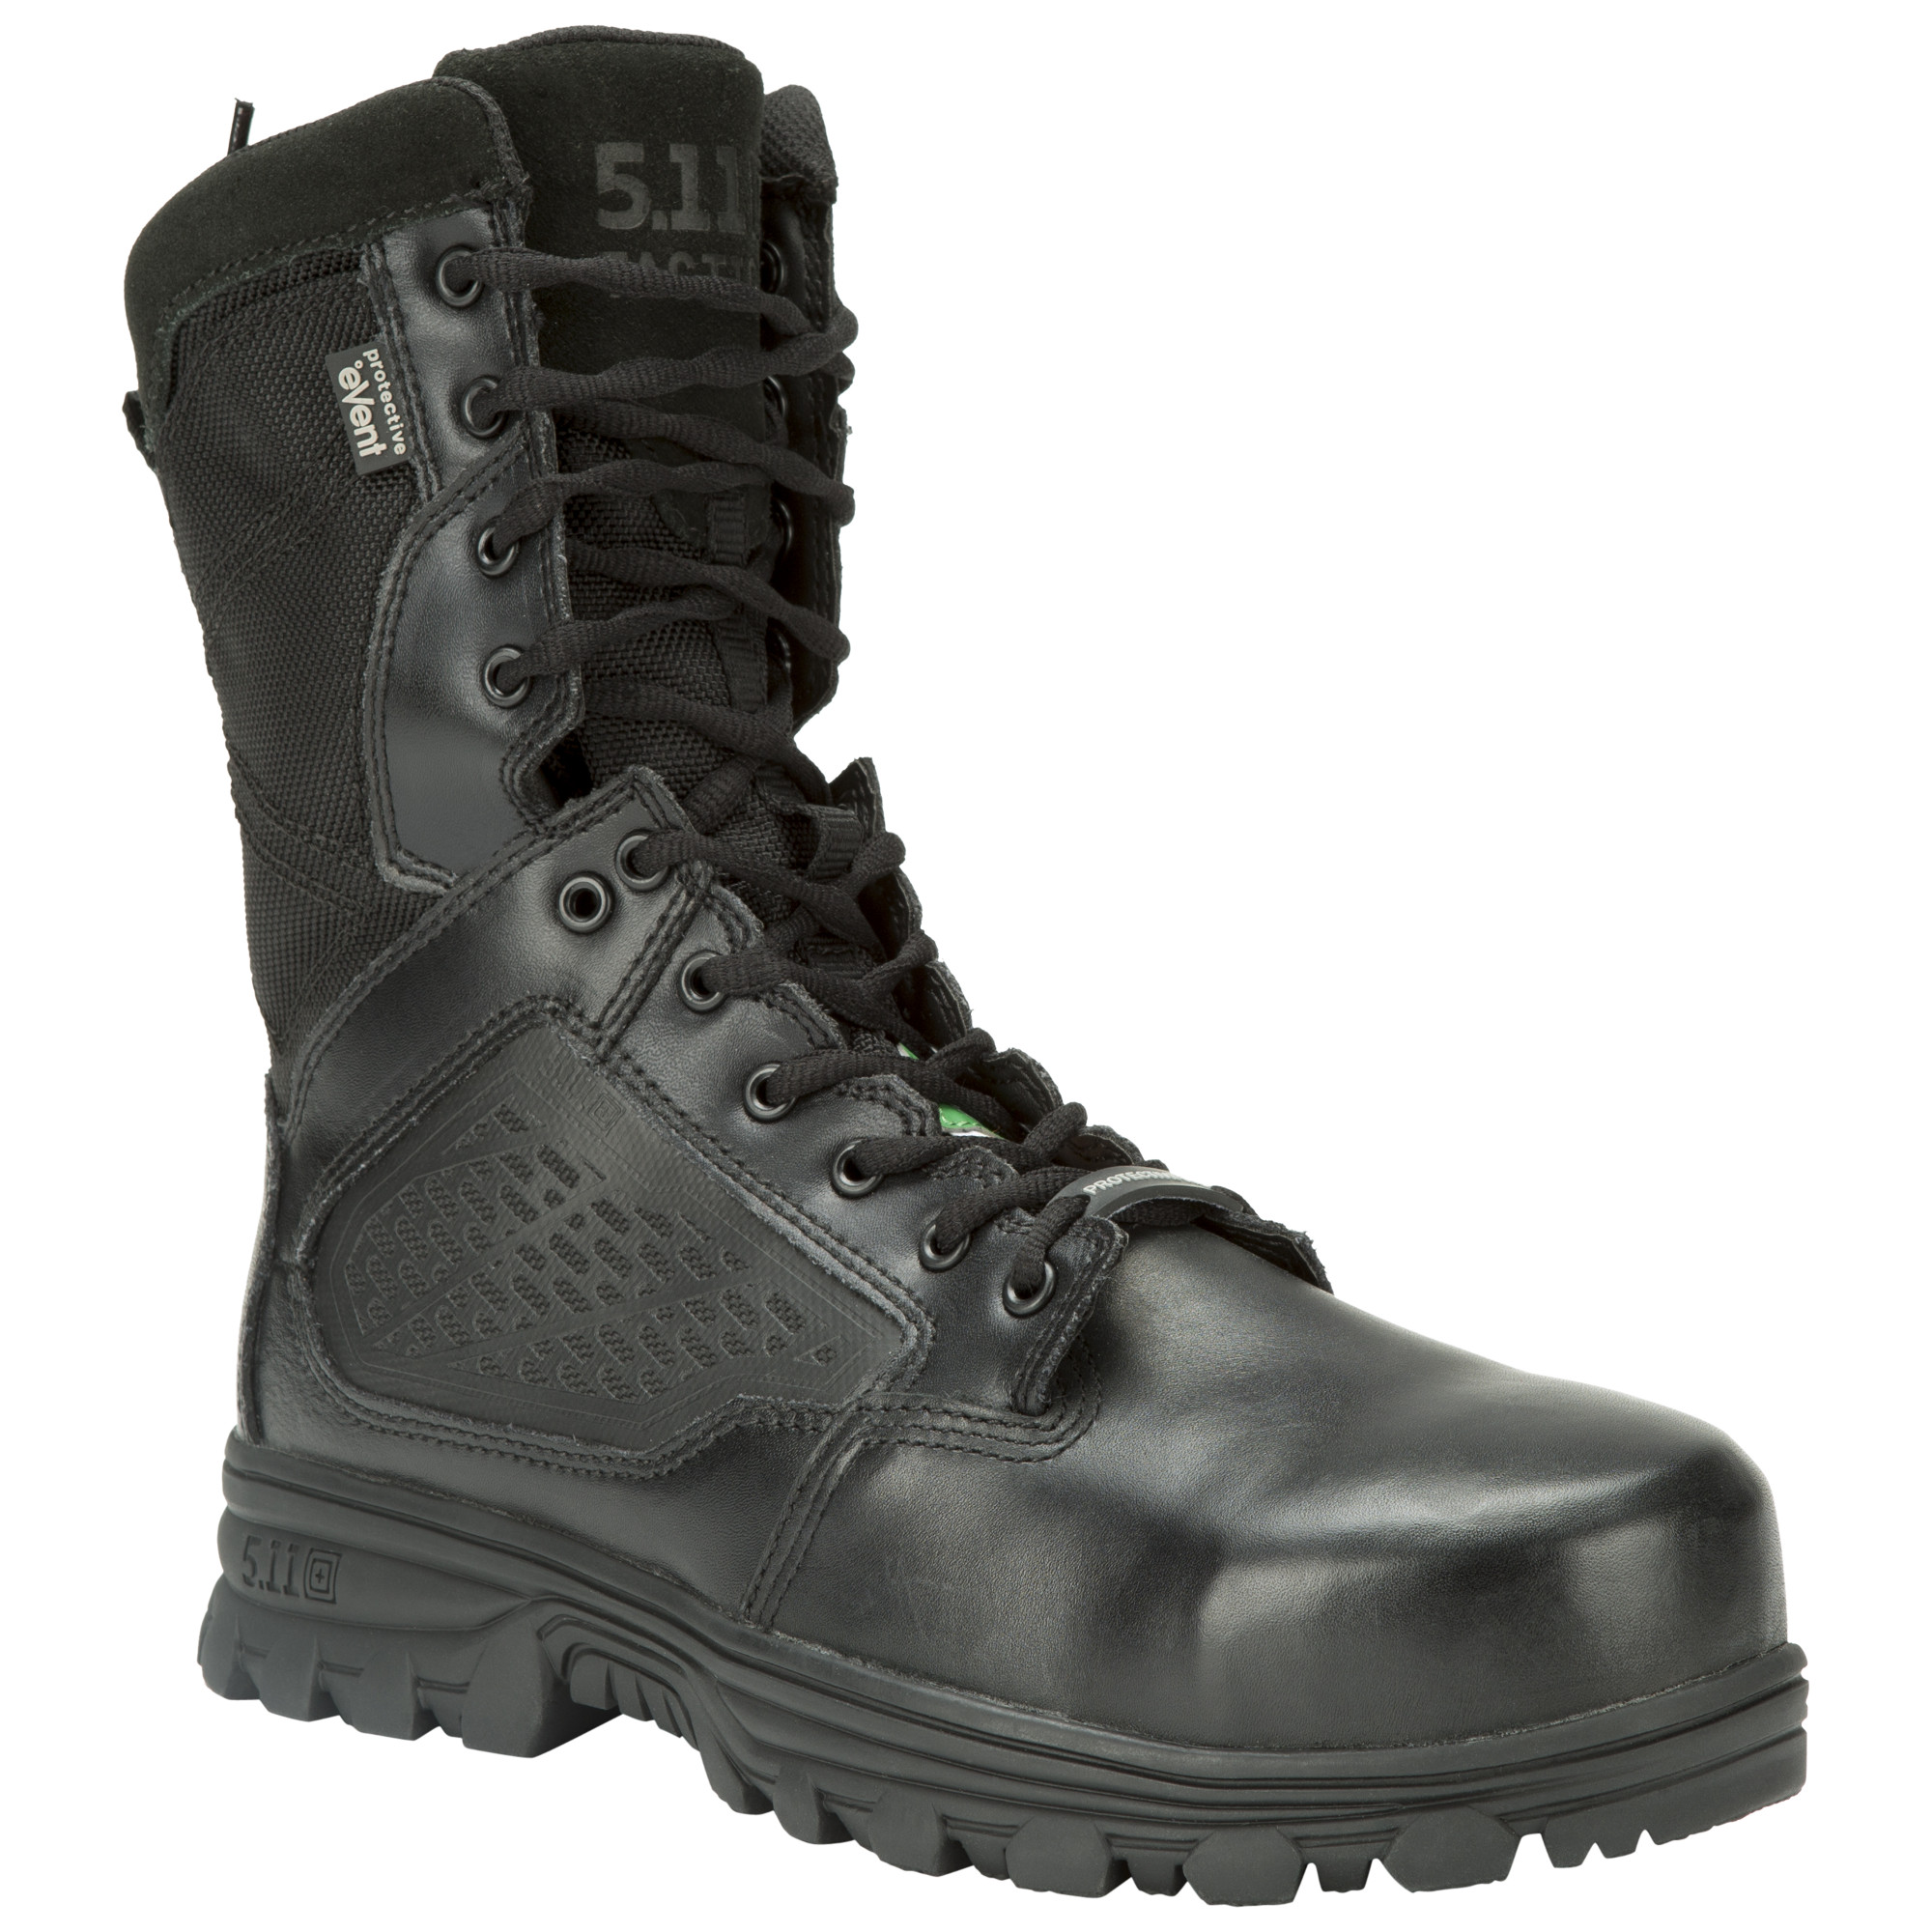 5.11 Tactical Men EVO 8 CST Boot (Black) thumbnail